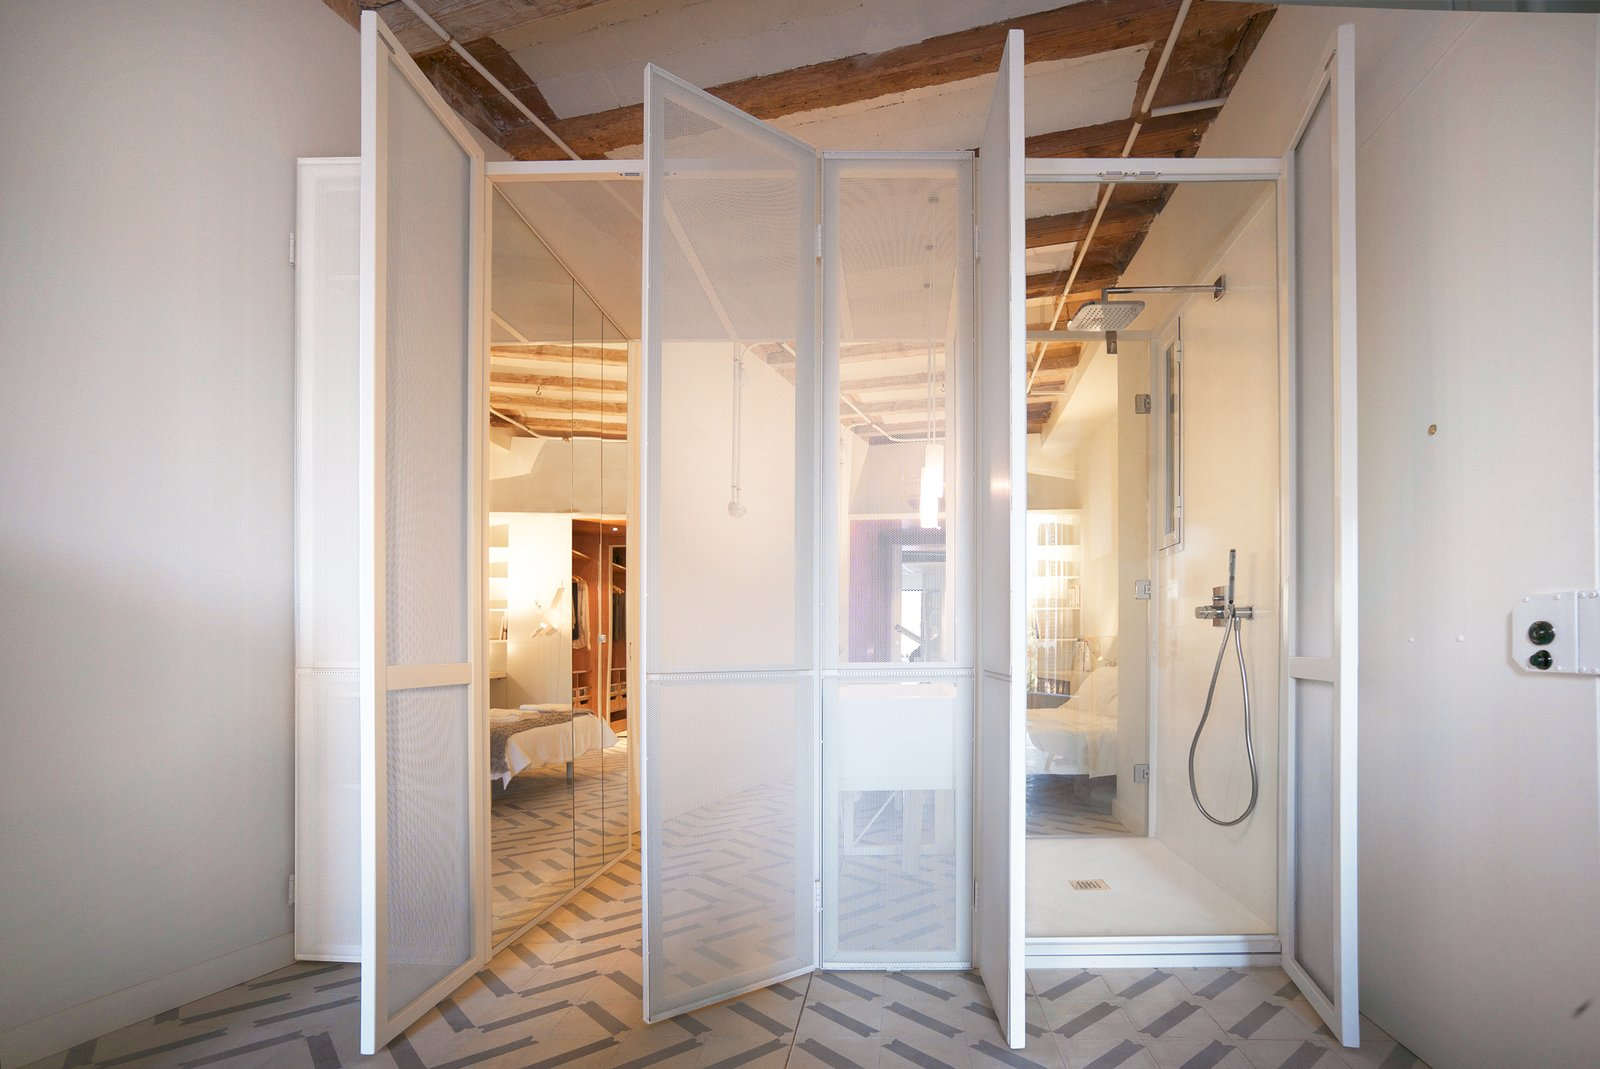 Bath Room, Ceiling Lighting, Pendant Lighting, One Piece Toilet, Open Shower, Freestanding Tub, and Undermount Sink The LightBox also contains the wet area.  LIGHTSLICE apartment